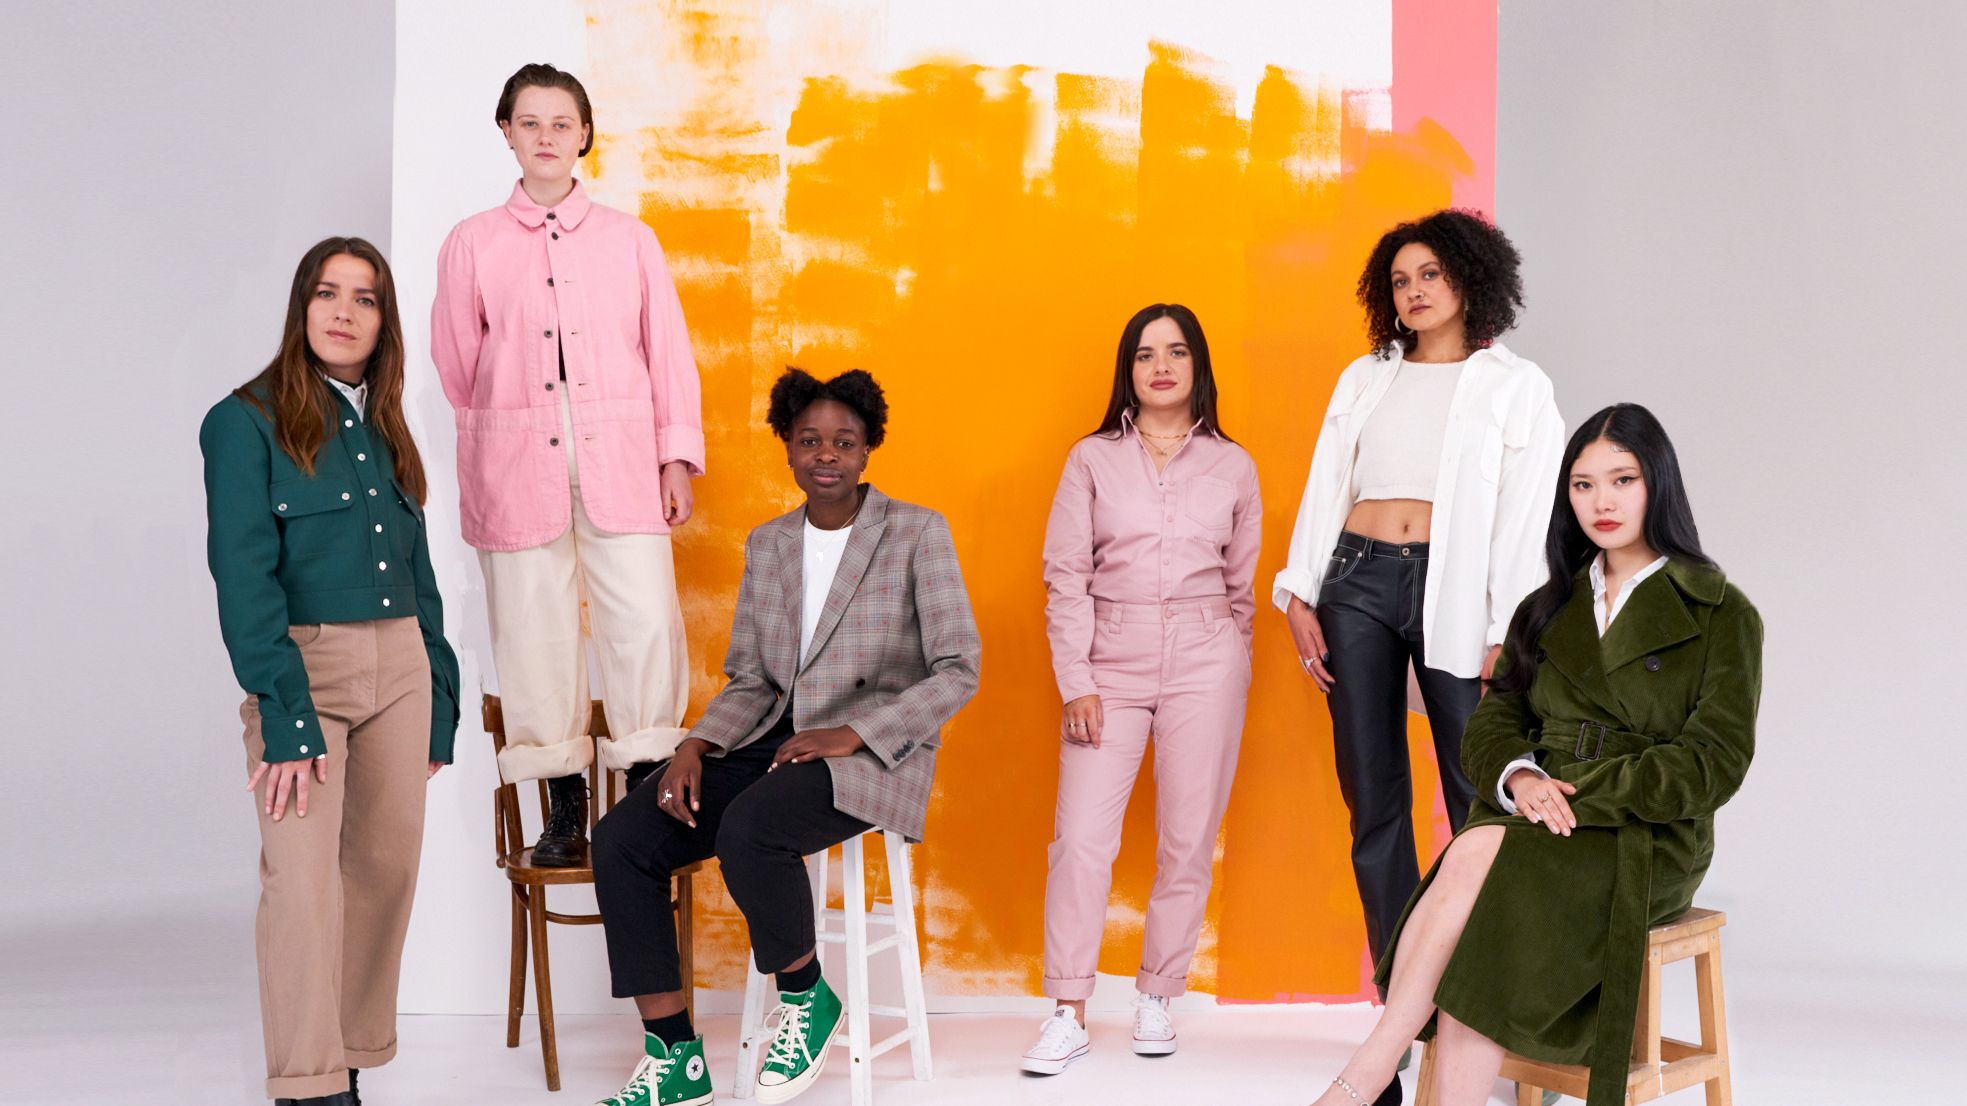 Meet The New Generation Of British Artists Selling On Instagram To Invest In Now